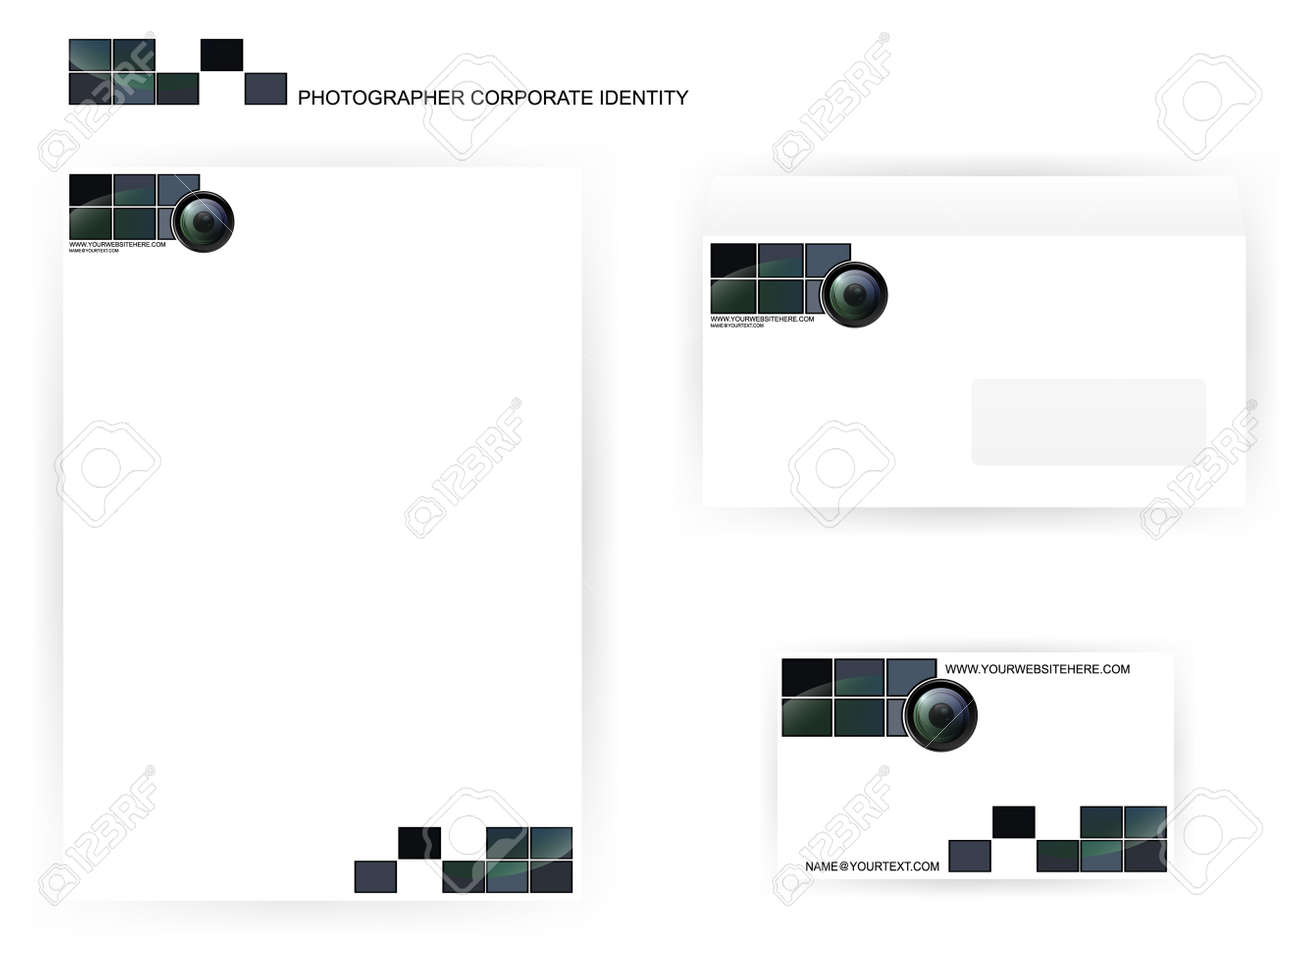 set of photographer corporate identity templates with camera lens Stock Vector - 12822899